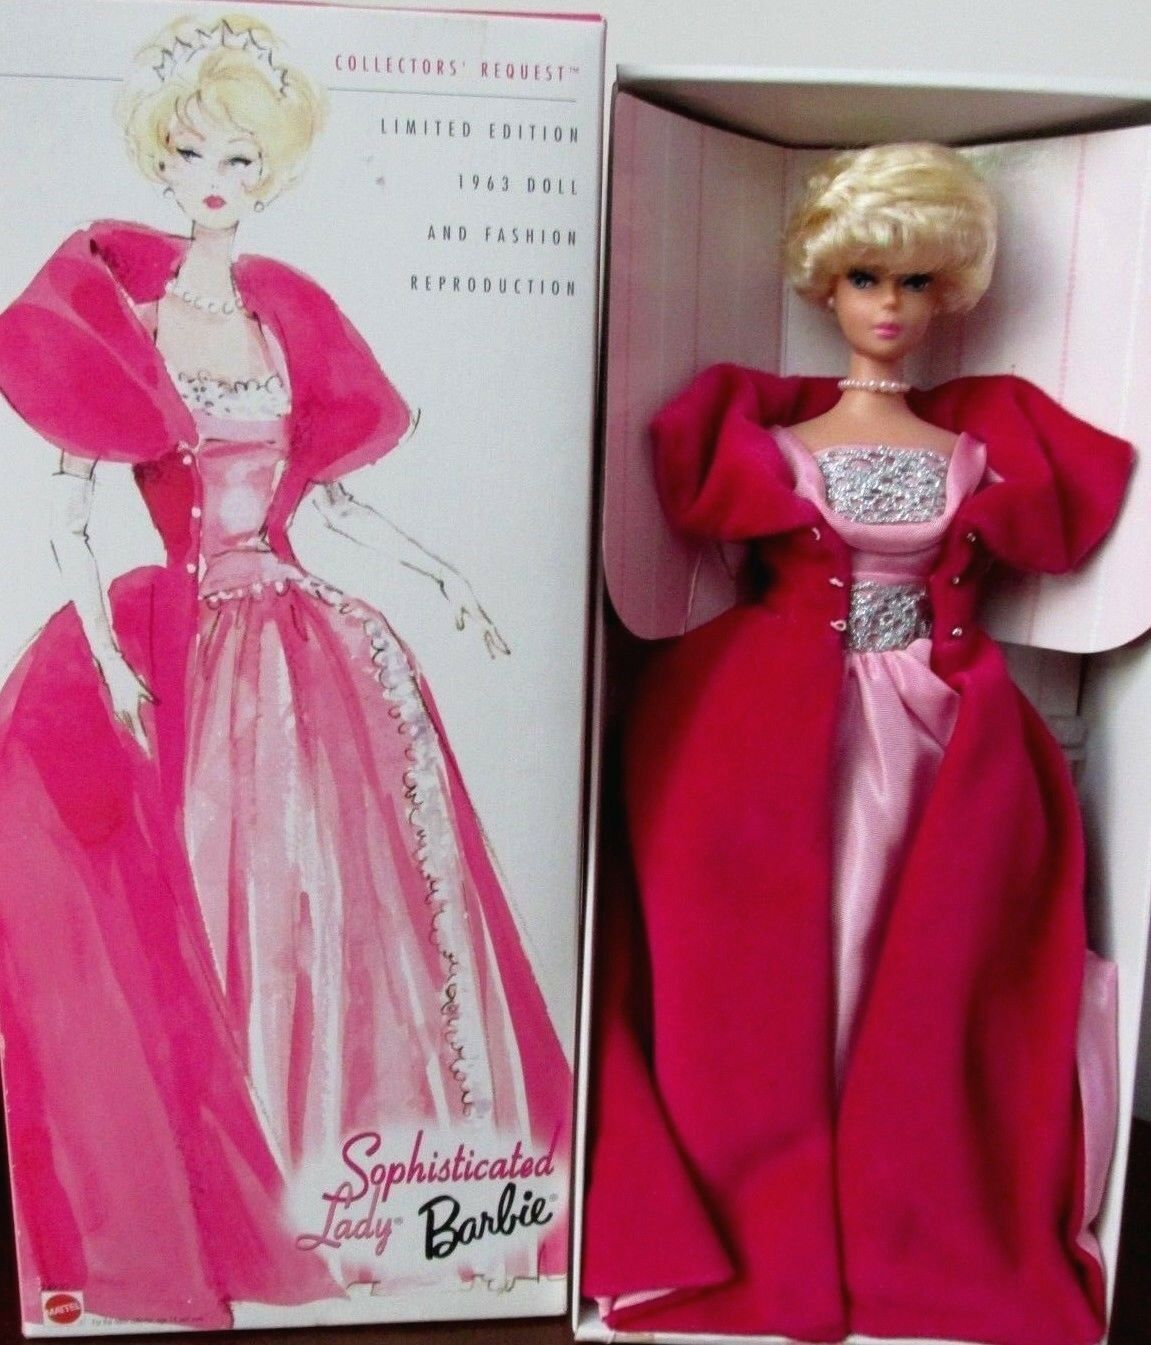 1999 BARBIE DOLL   SOPHISTICATED LADY   L E  NRFB  1963 DOLL REPRODUCTION  24930